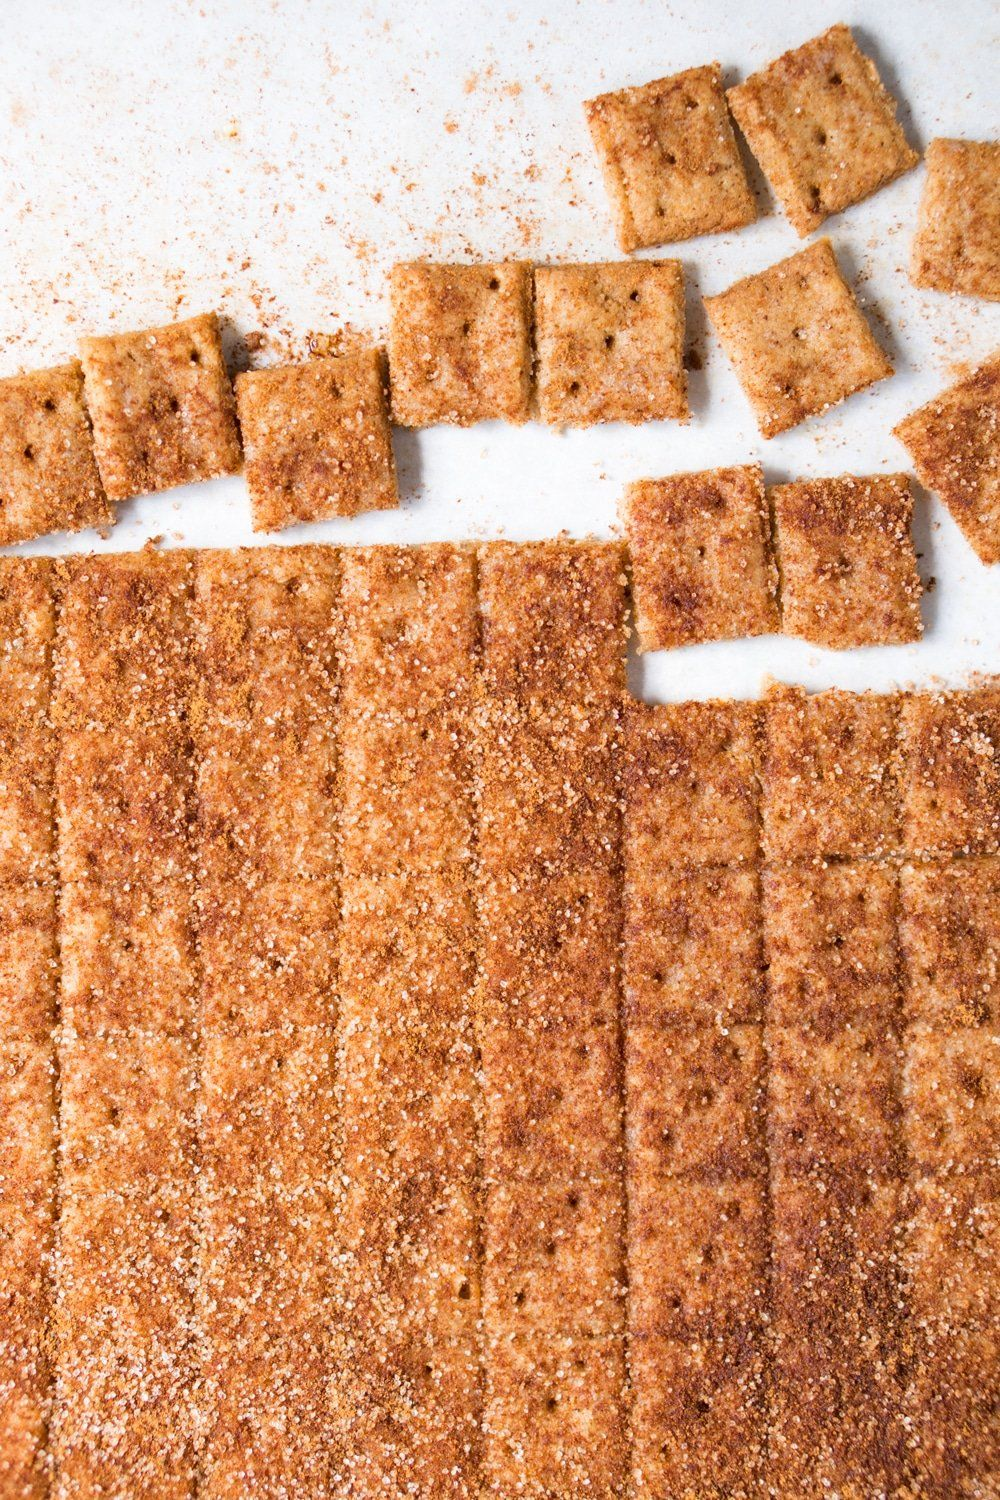 Gluten Free & Keto Cinnamon Toast Crunch Cereal � Now Extra Crunchy!